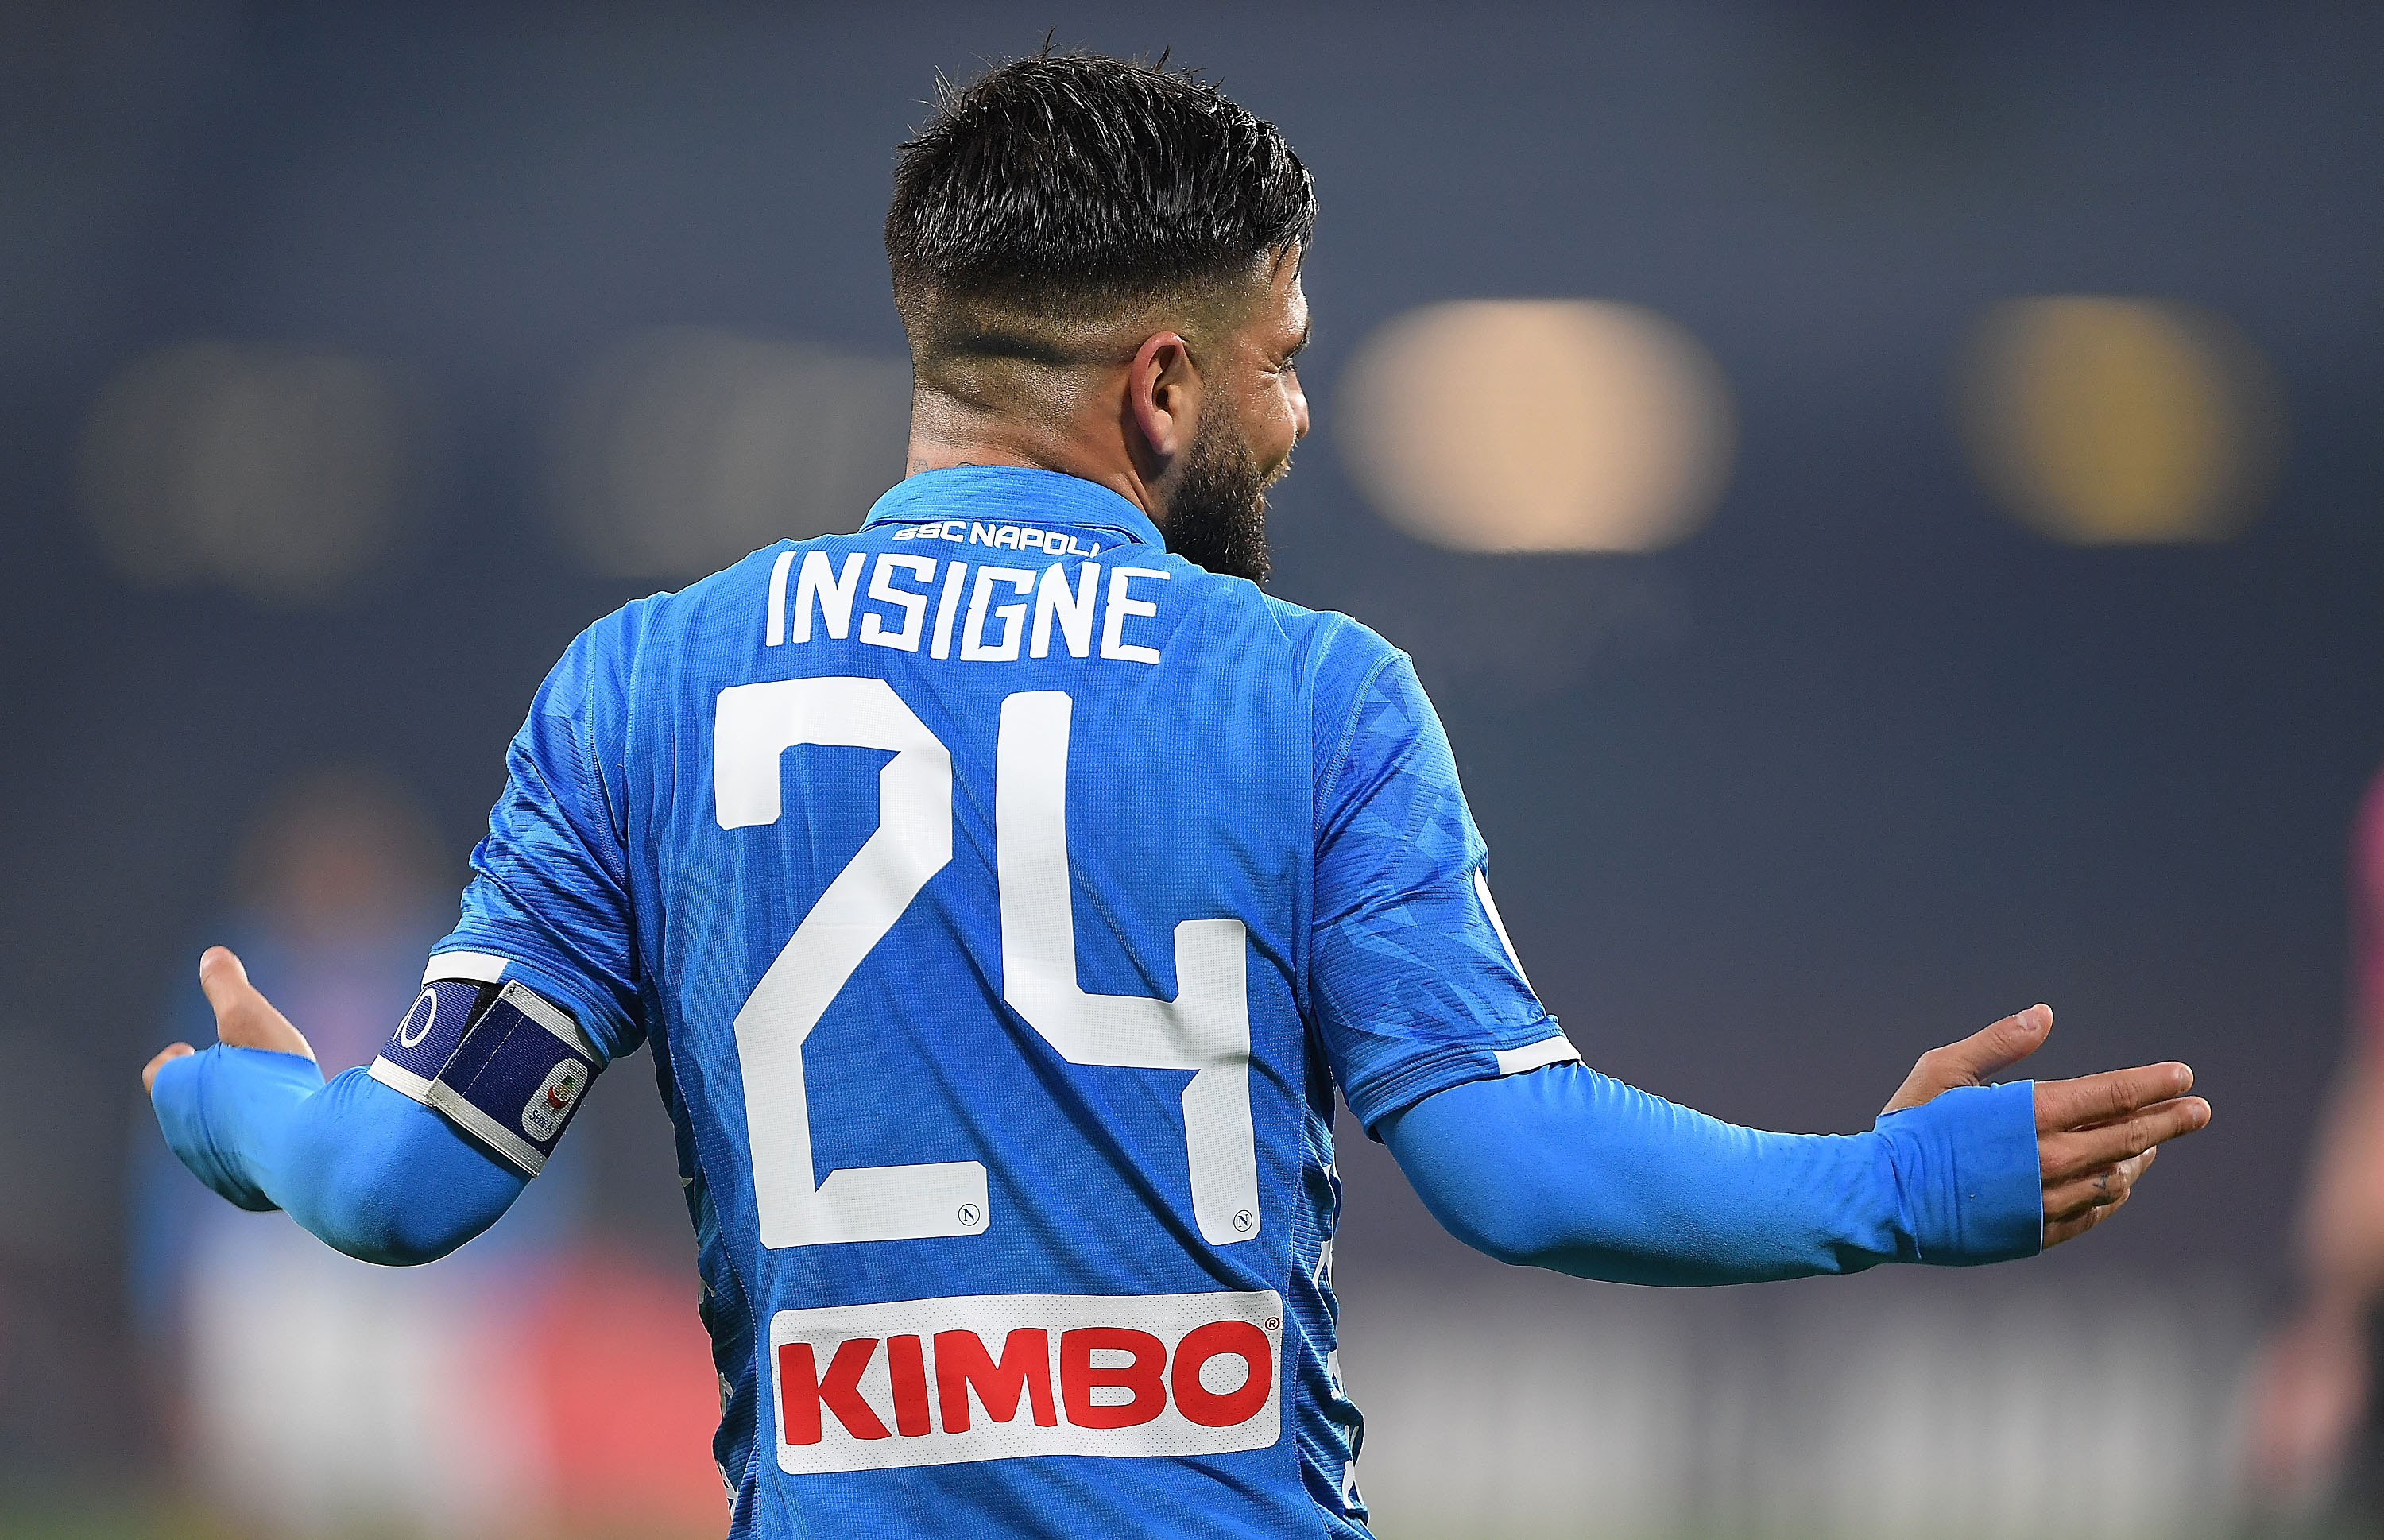 NAPLES, ITALY - JANUARY 13: Lorenzo Insigne of SSC Napoli in action during the Coppa Italia match between SSC Napoli and US Sassuolo at Stadio San Paolo on January 13, 2019 in Naples, Italy. (Photo by Francesco Pecoraro/Getty Images)